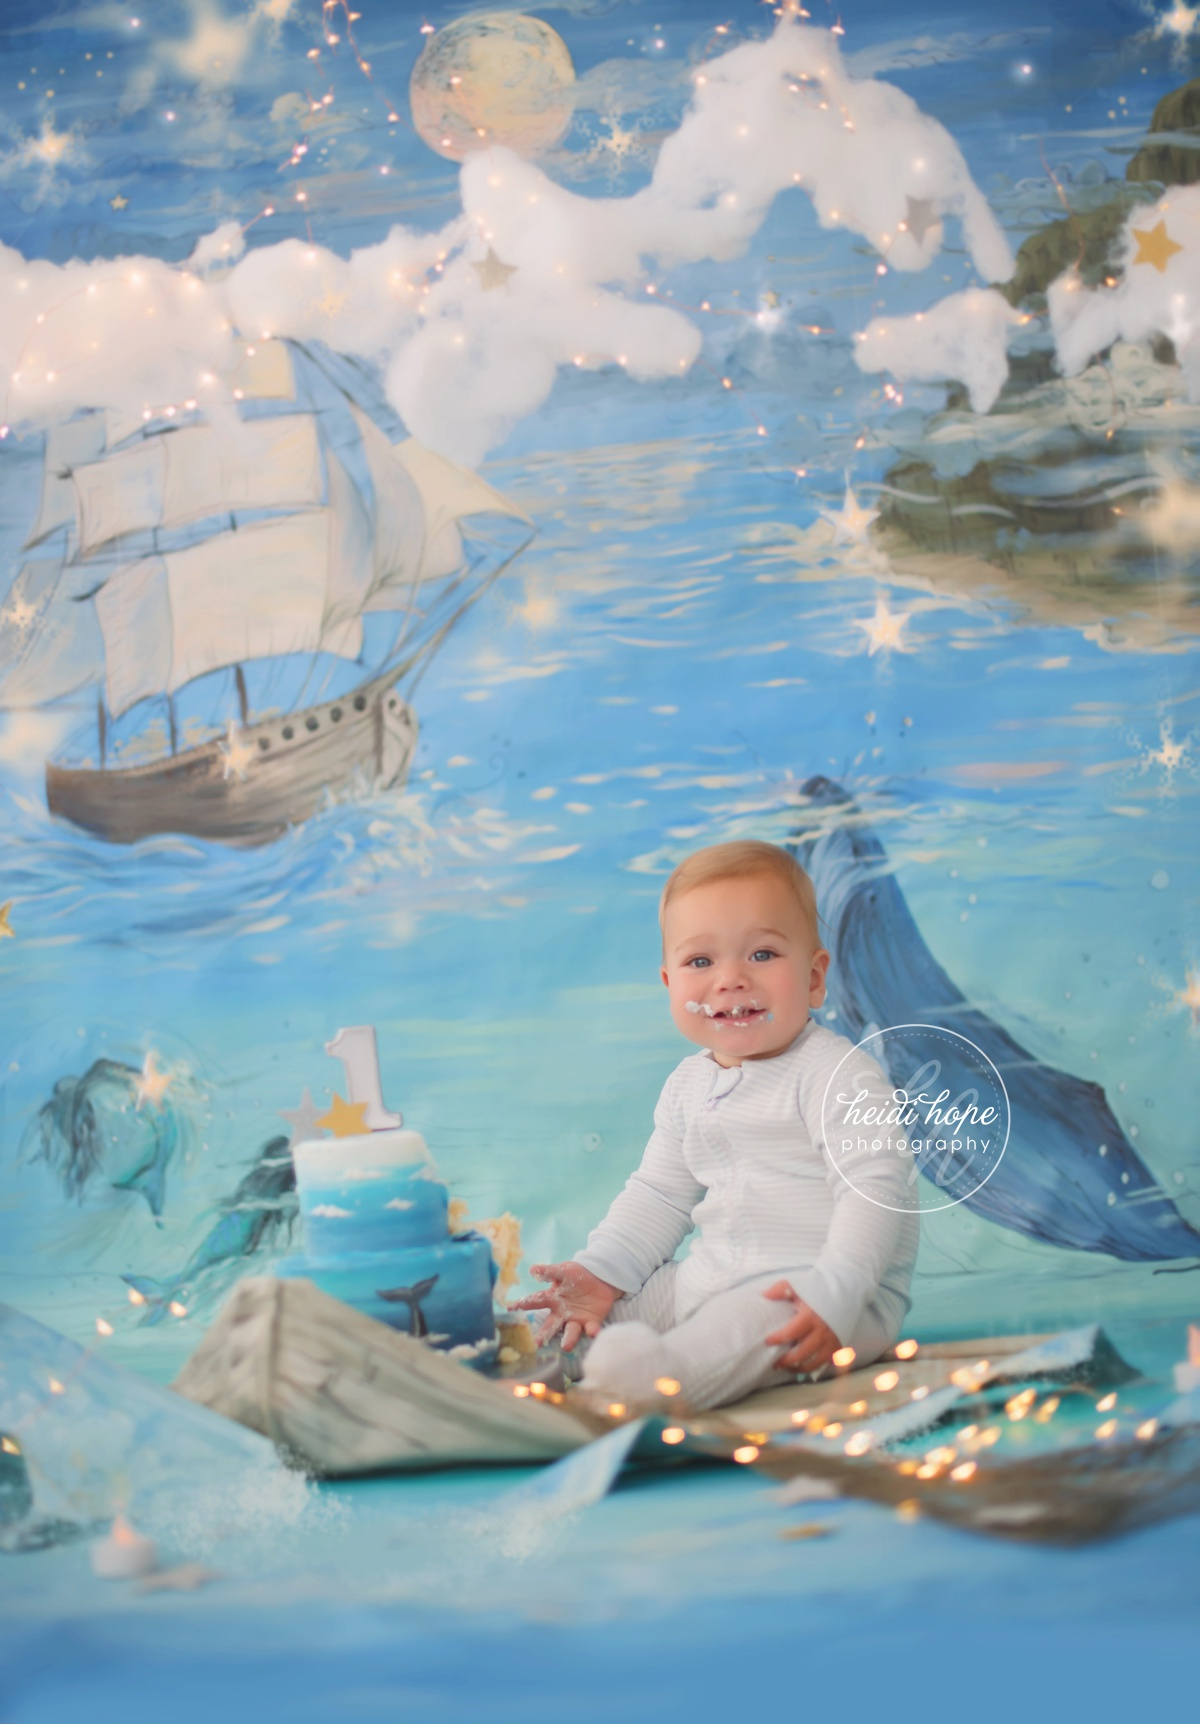 land of nod nautical peter pan magical background first birthday cakesmash01 (9)